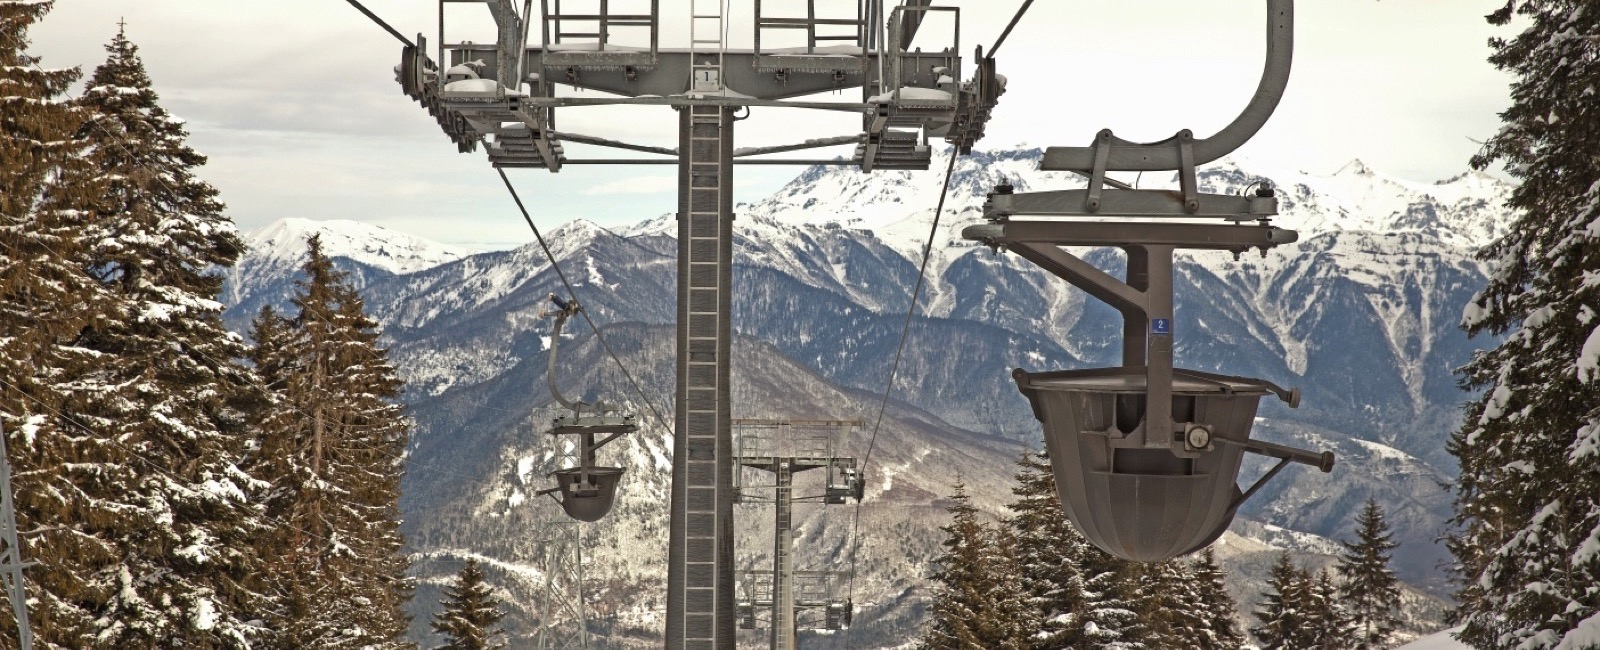 Doppelmayr: Ropeway as a means to transport People and Material